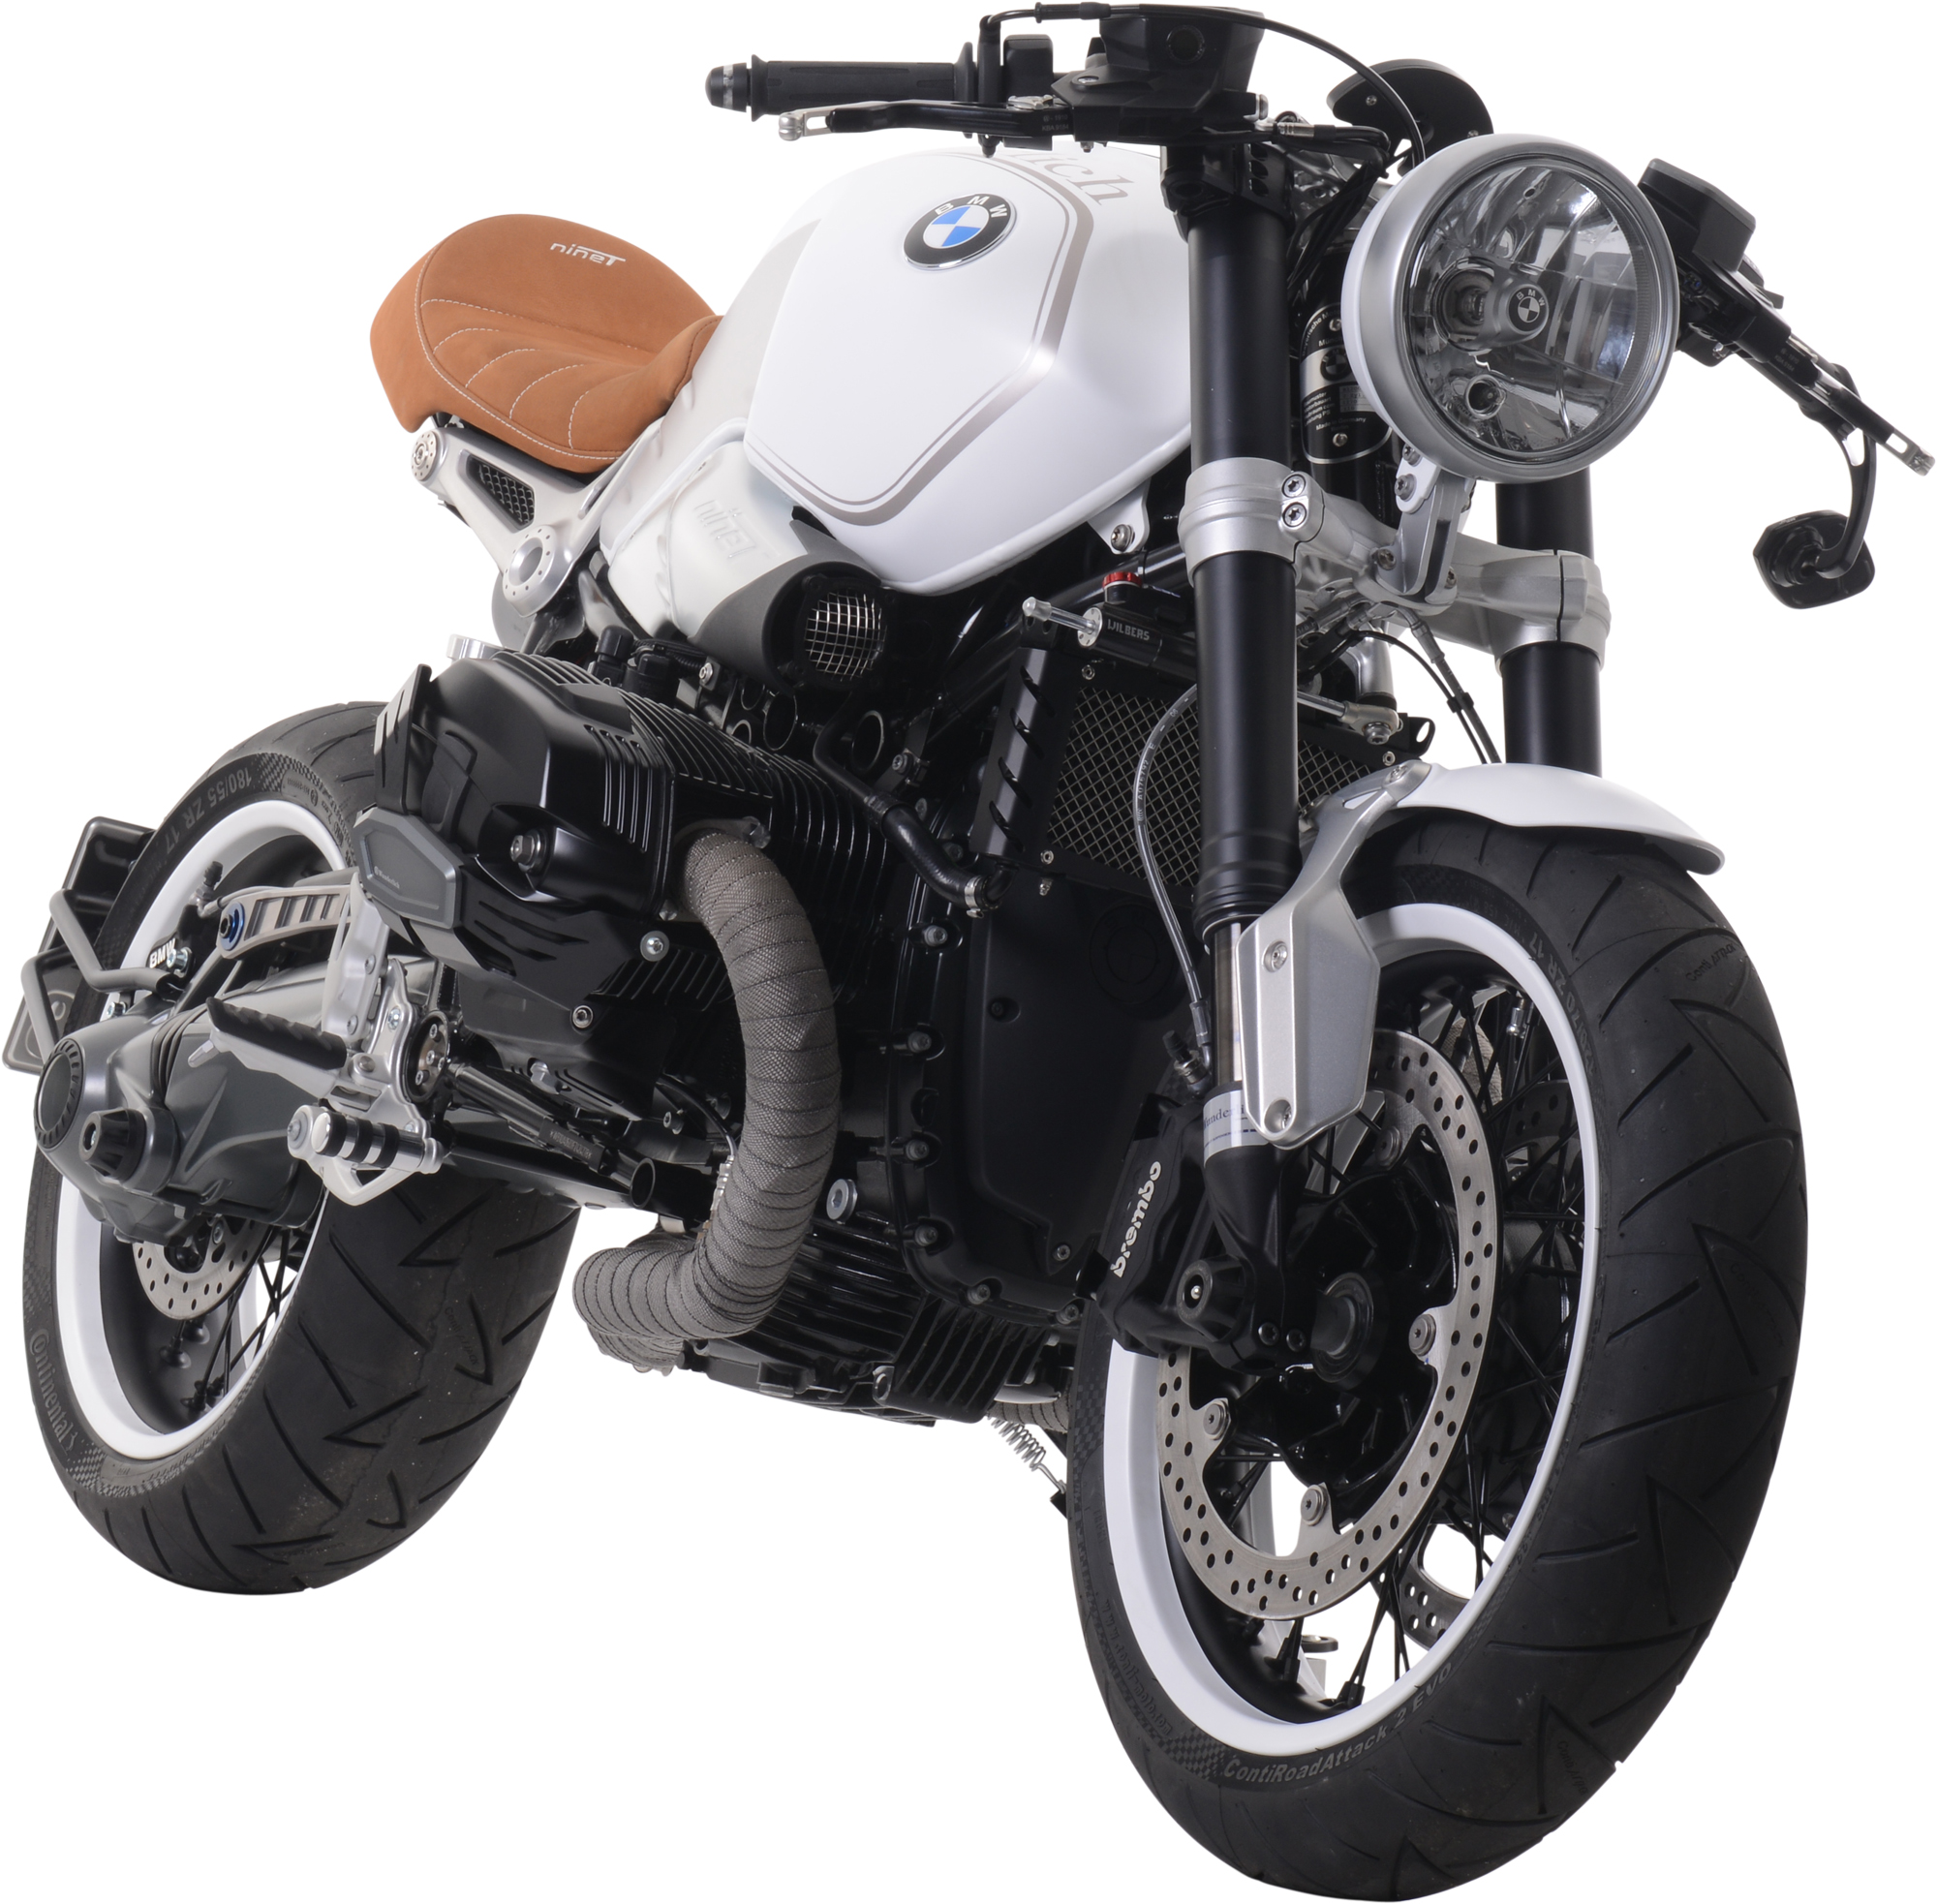 R_nineT_001 Extraordinary Bmw R 1200 R Nine T Cars Trend